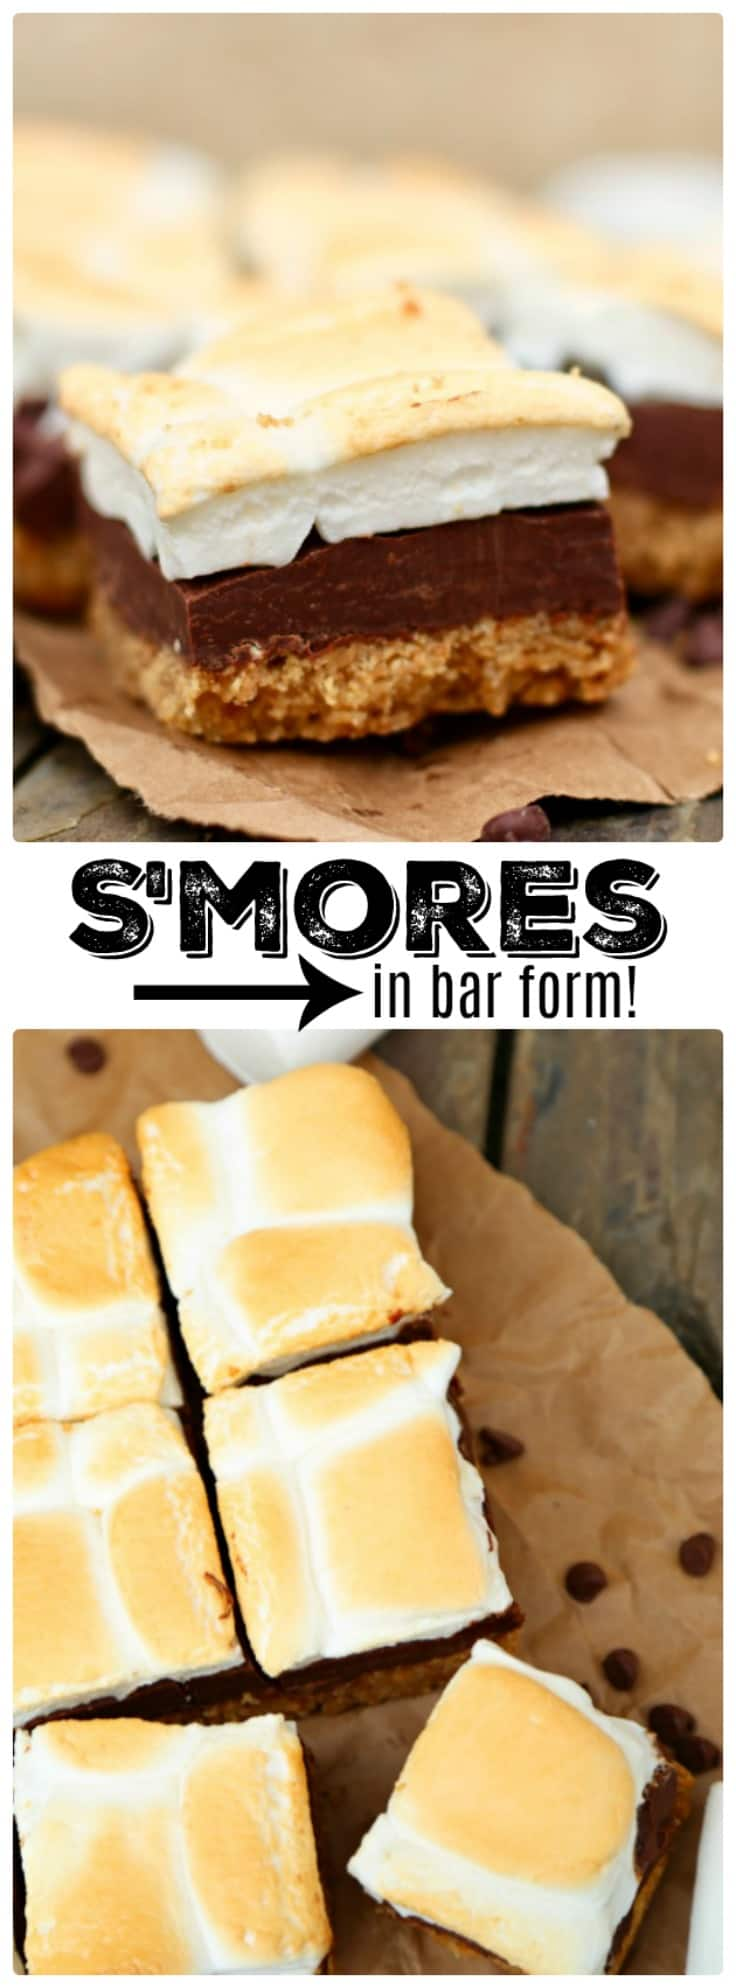 Perfect No-Bake S'mores Bars are made with a buttery graham cracker crust, rich chocolate fudge center and golden brown toasted marshmallow topping